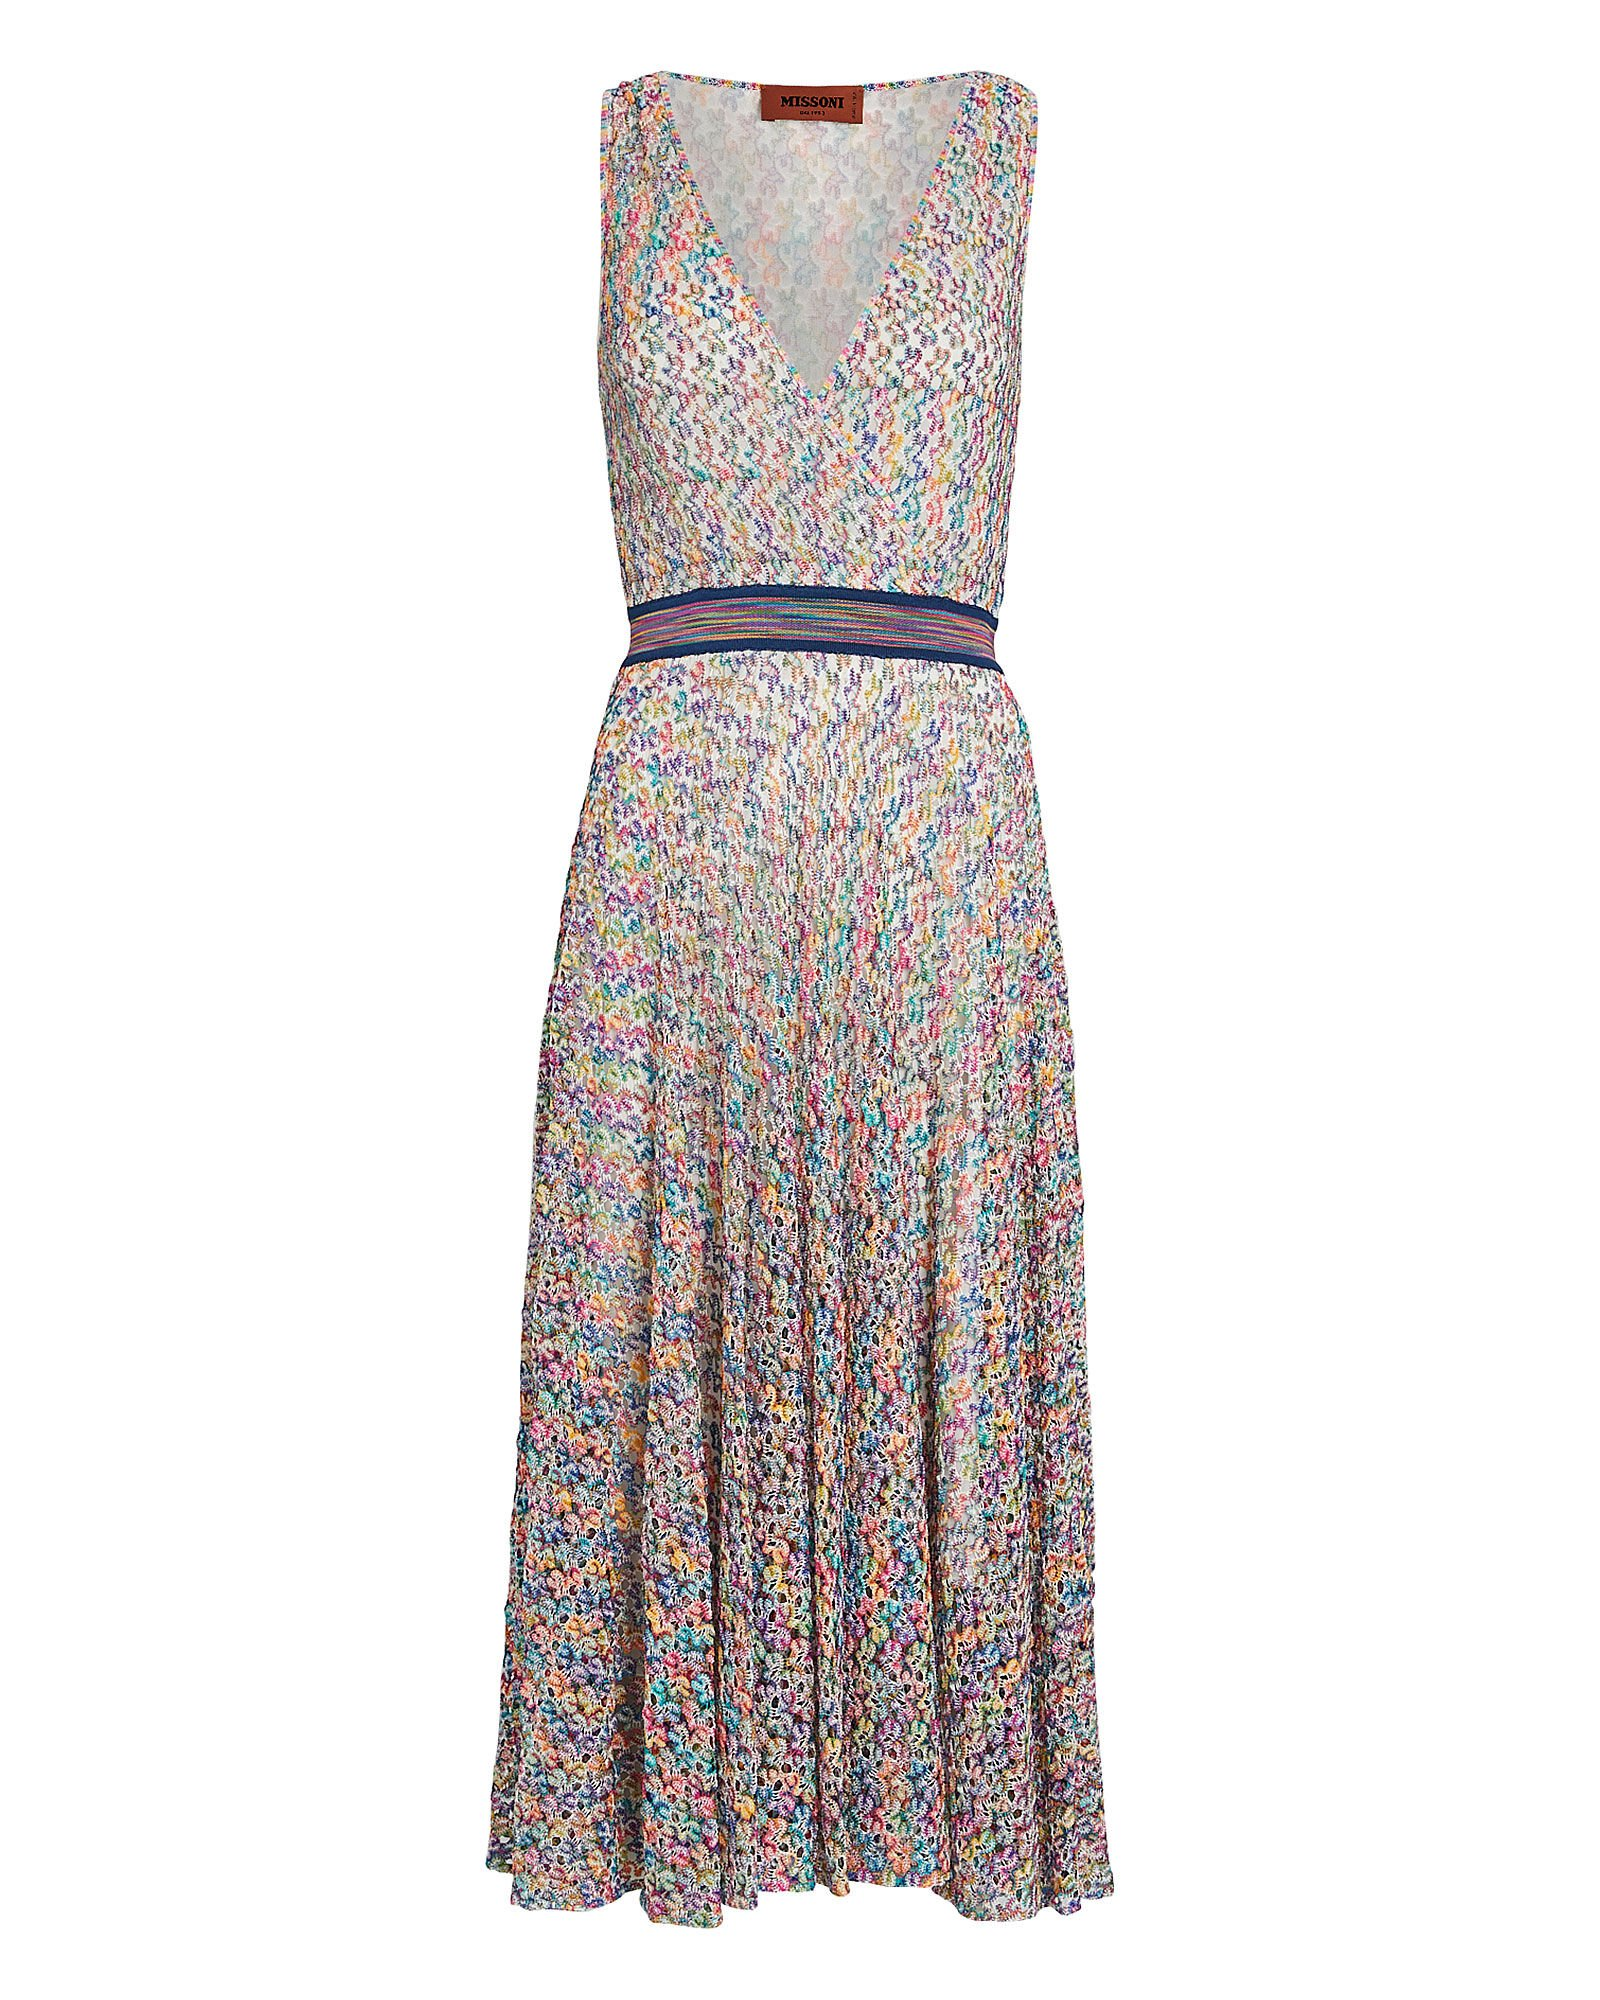 Rainbow Knit Faux-Wrap Dress, MULTI, hi-res